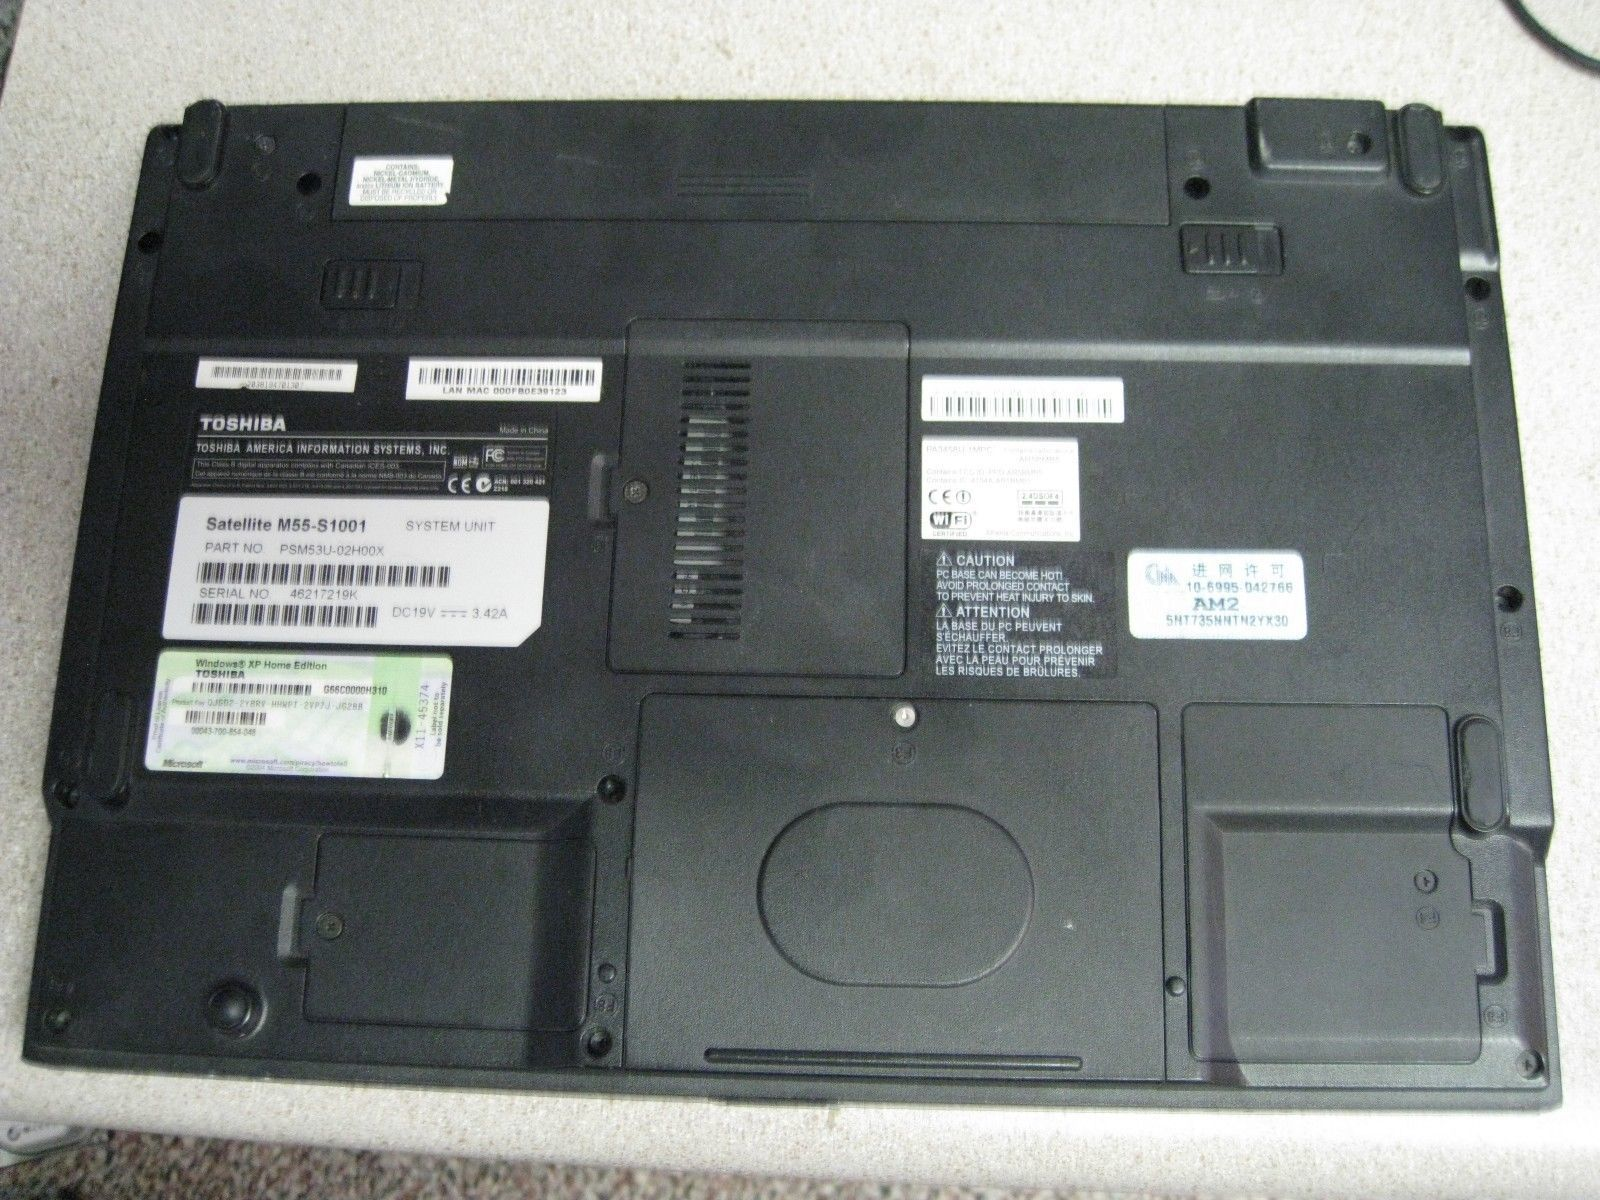 Toshiba Satellite M55-S1001 for parts